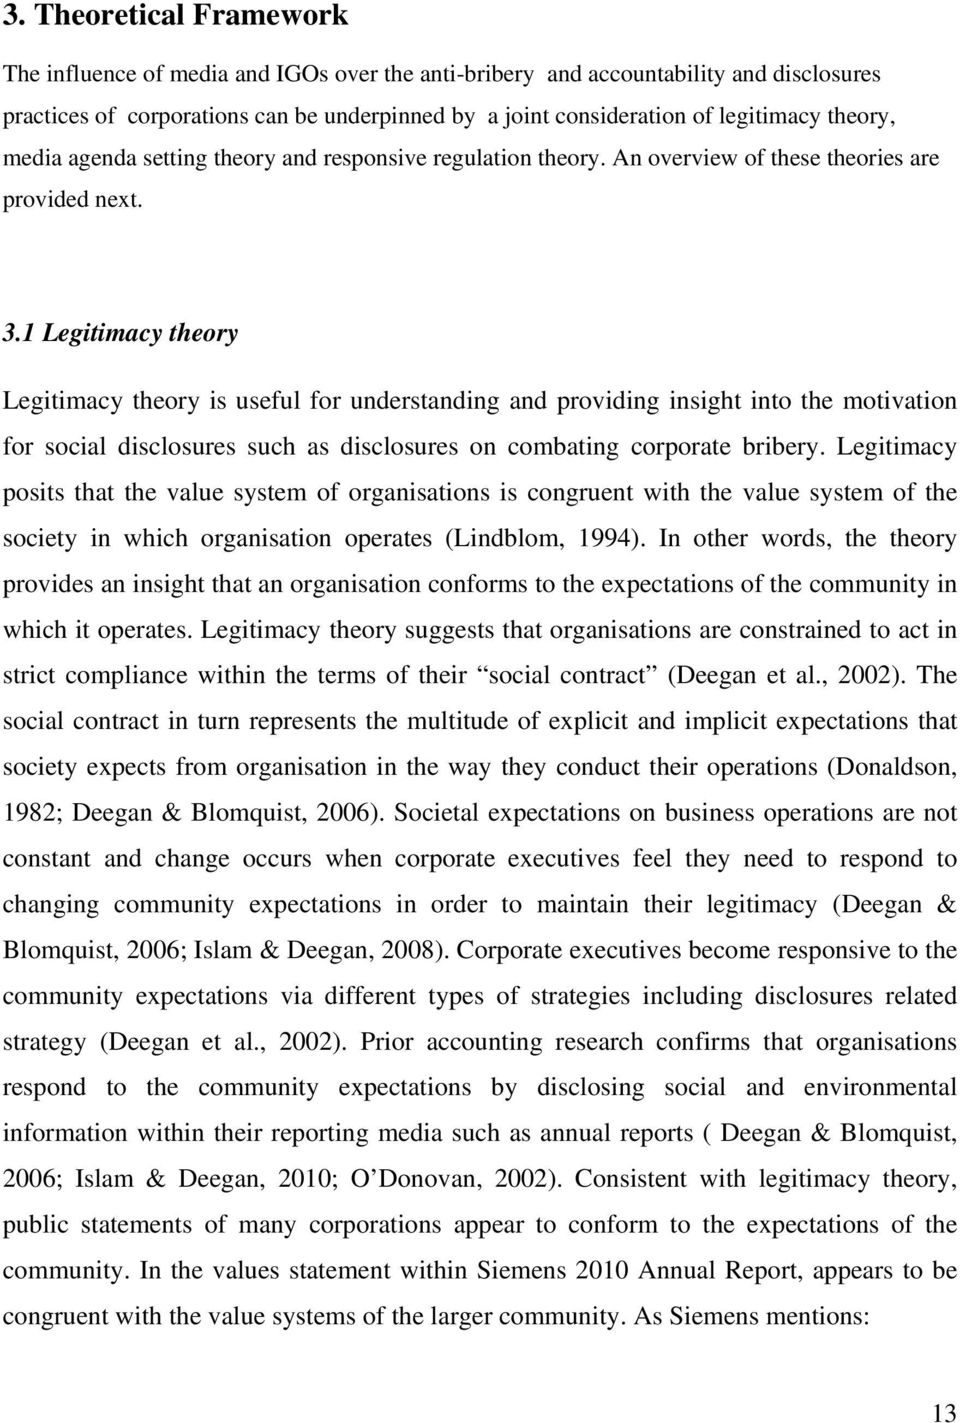 1 Legitimacy theory Legitimacy theory is useful for understanding and providing insight into the motivation for social disclosures such as disclosures on combating corporate bribery.